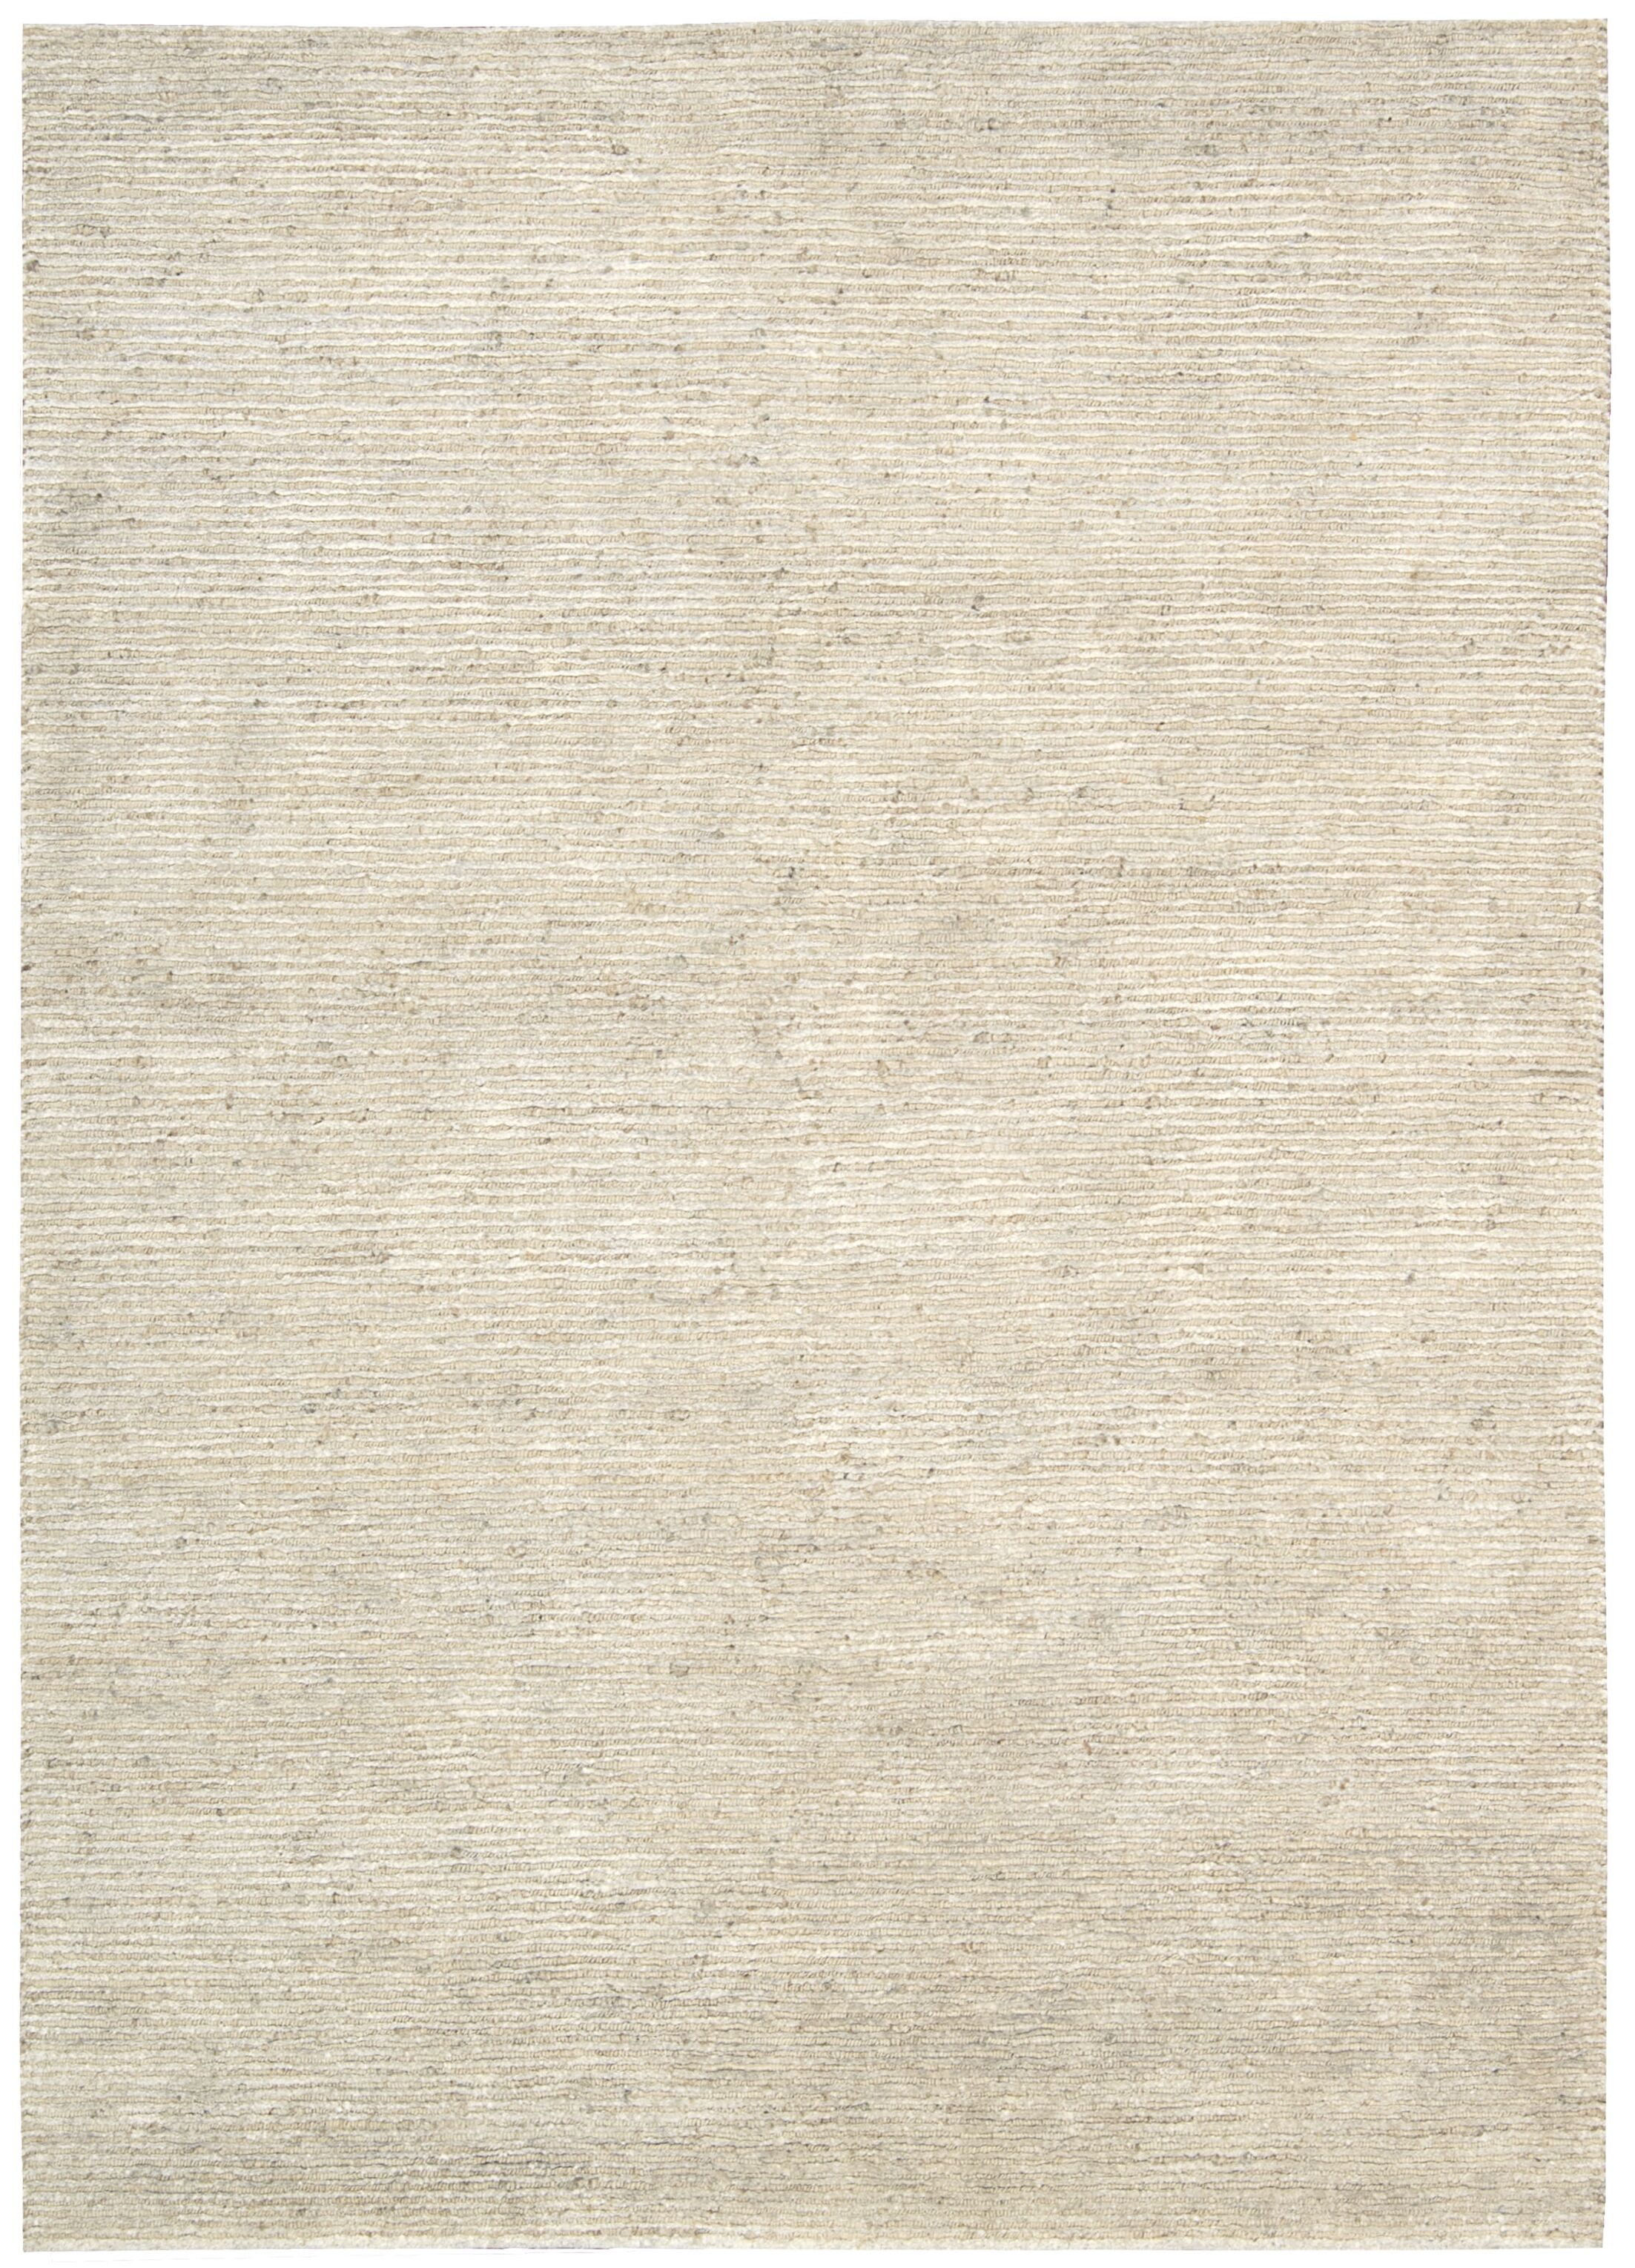 Mesa Hand-Woven Indus Barite Area Rug Rug Size: Rectangle 8' x 10'